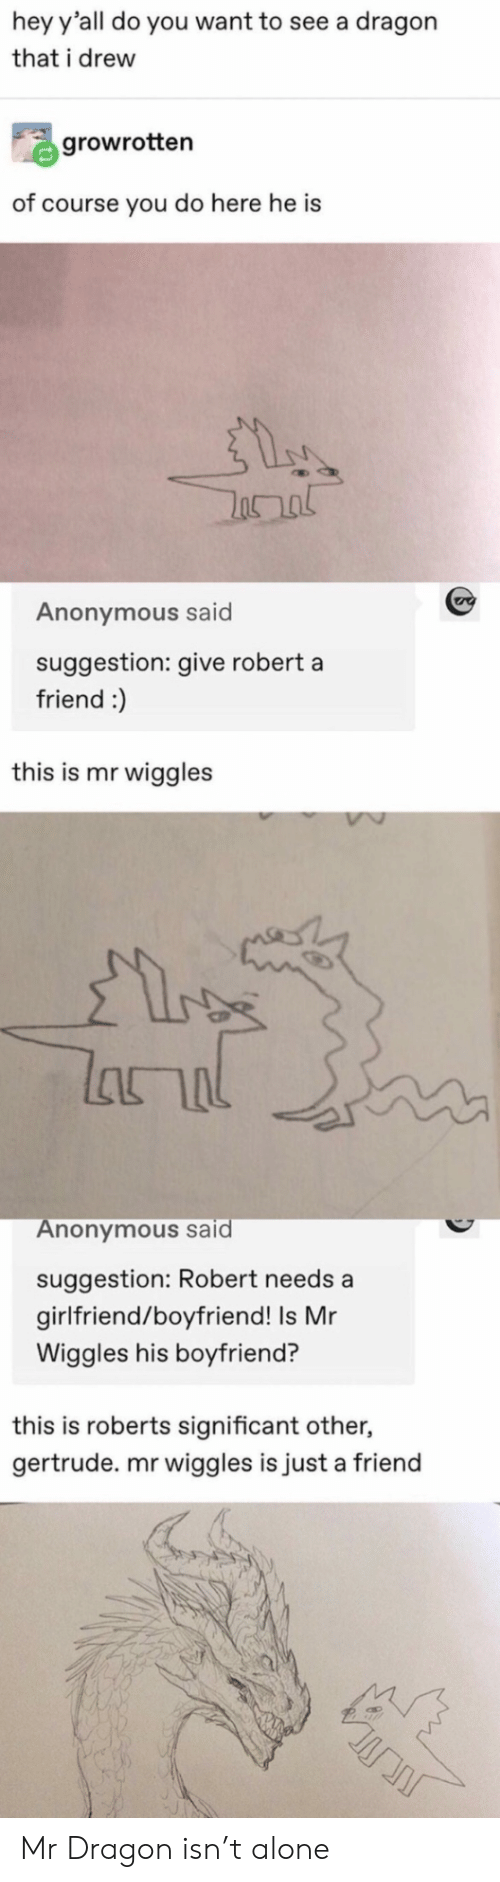 significant: hey y'all do you want to see a dragon  that i drew  growrotten  of course you do here he is  Anonymous said  suggestion: give robert a  friend :)  this is mr wiggles  lhור  Anonymous said  suggestion: Robert needs a  girlfriend/boyfriend! Is Mr  Wiggles his boyfriend?  this is roberts significant other,  gertrude. mr wiggles is just a friend Mr Dragon isn't alone